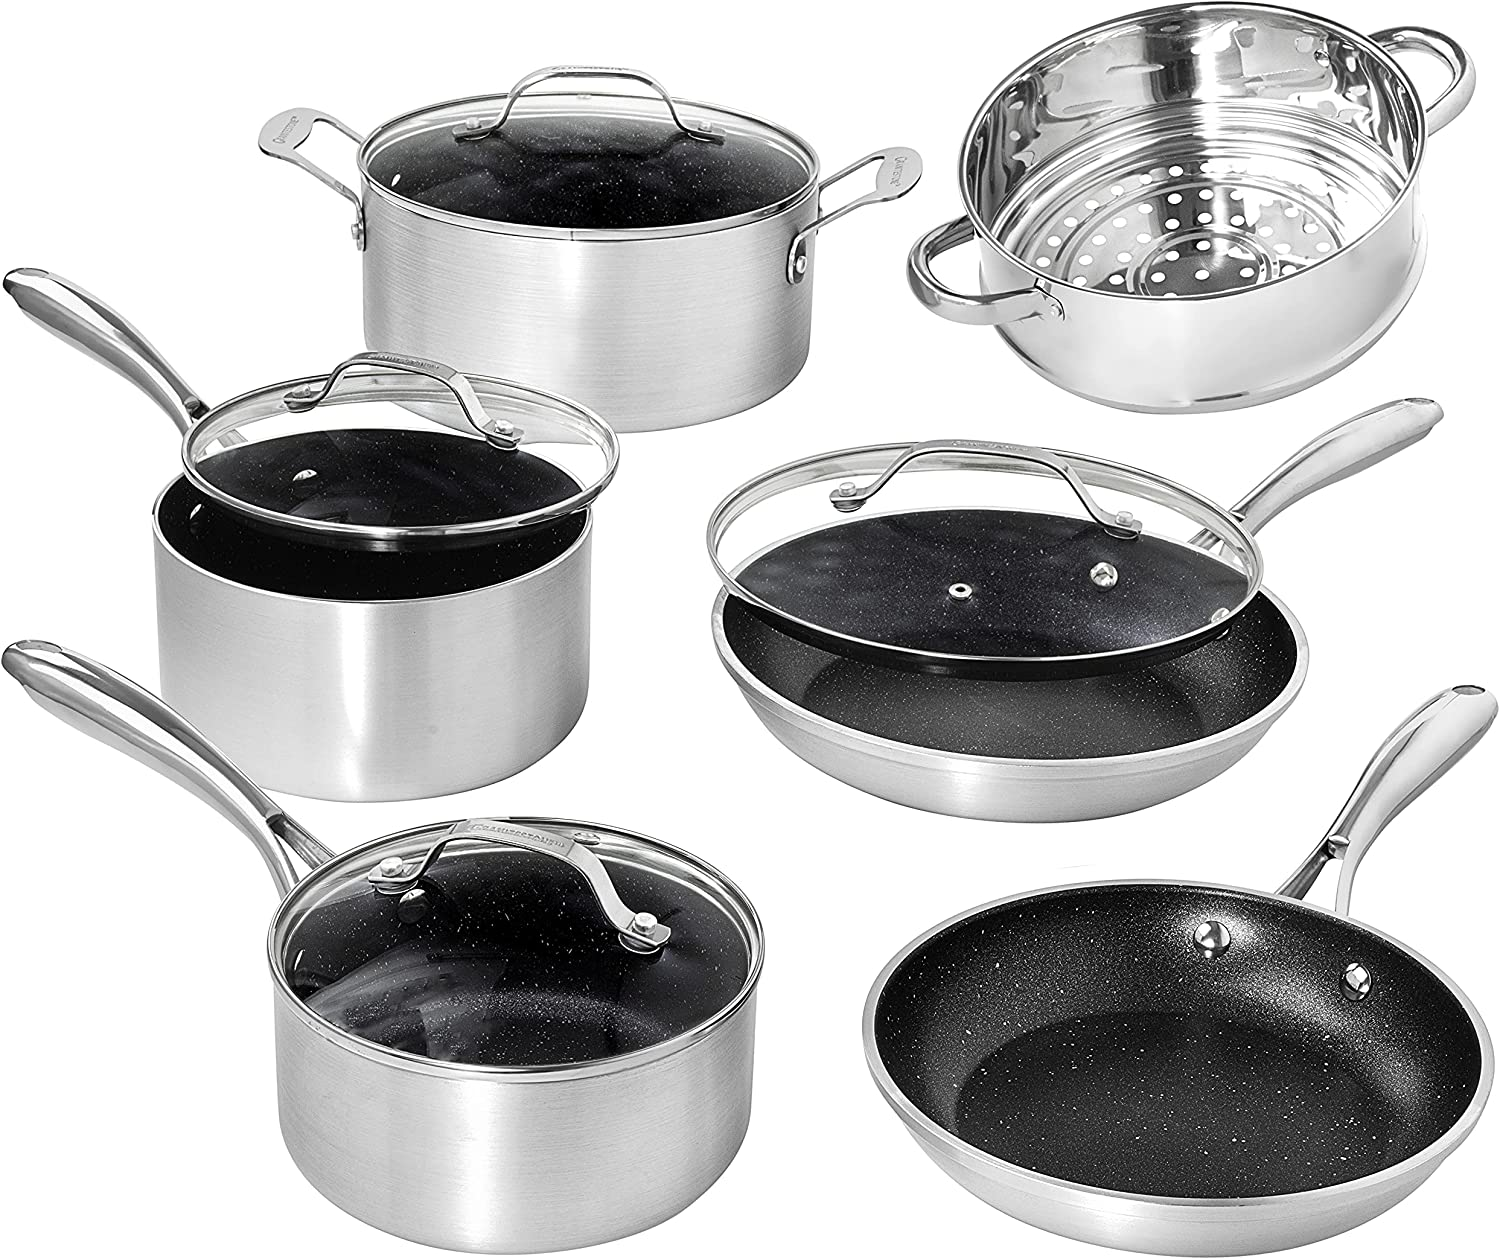 Granite Stone Cookware Sets Nonstick Pots and Pans Set– 10pc Kitchen Cookware Sets Cookware Pots and Pans for Cooking Pan Set Granitestone Silver Cookware Set Non Sticking Pan Set – Dishwasher Safe